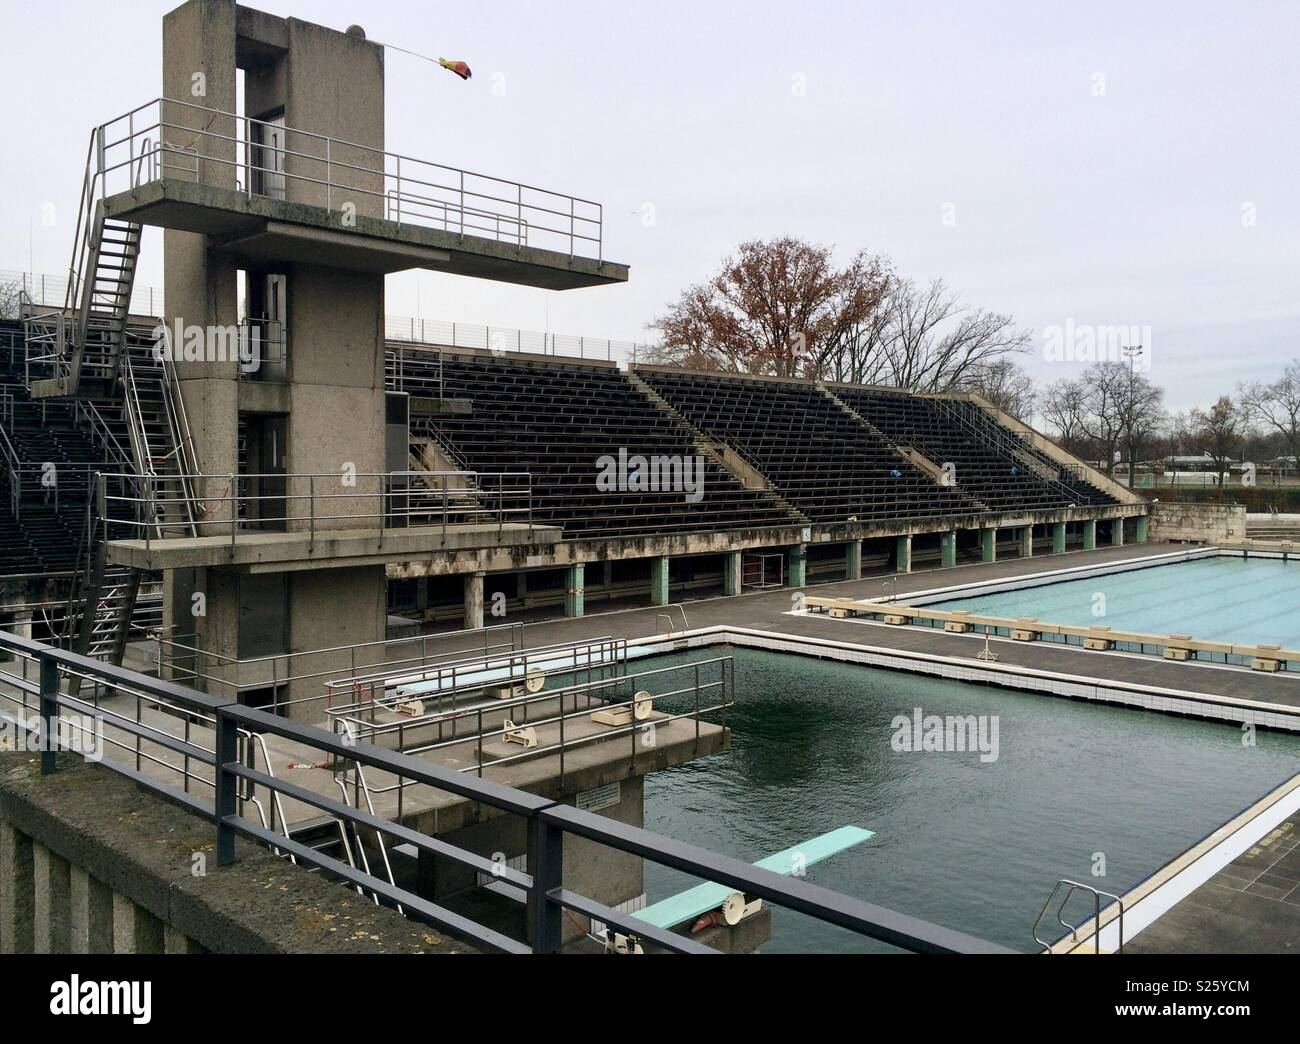 Swimmingpool Berlin Berlin Olympic Stadium Swimming Pool Stock Photo 311147220 Alamy